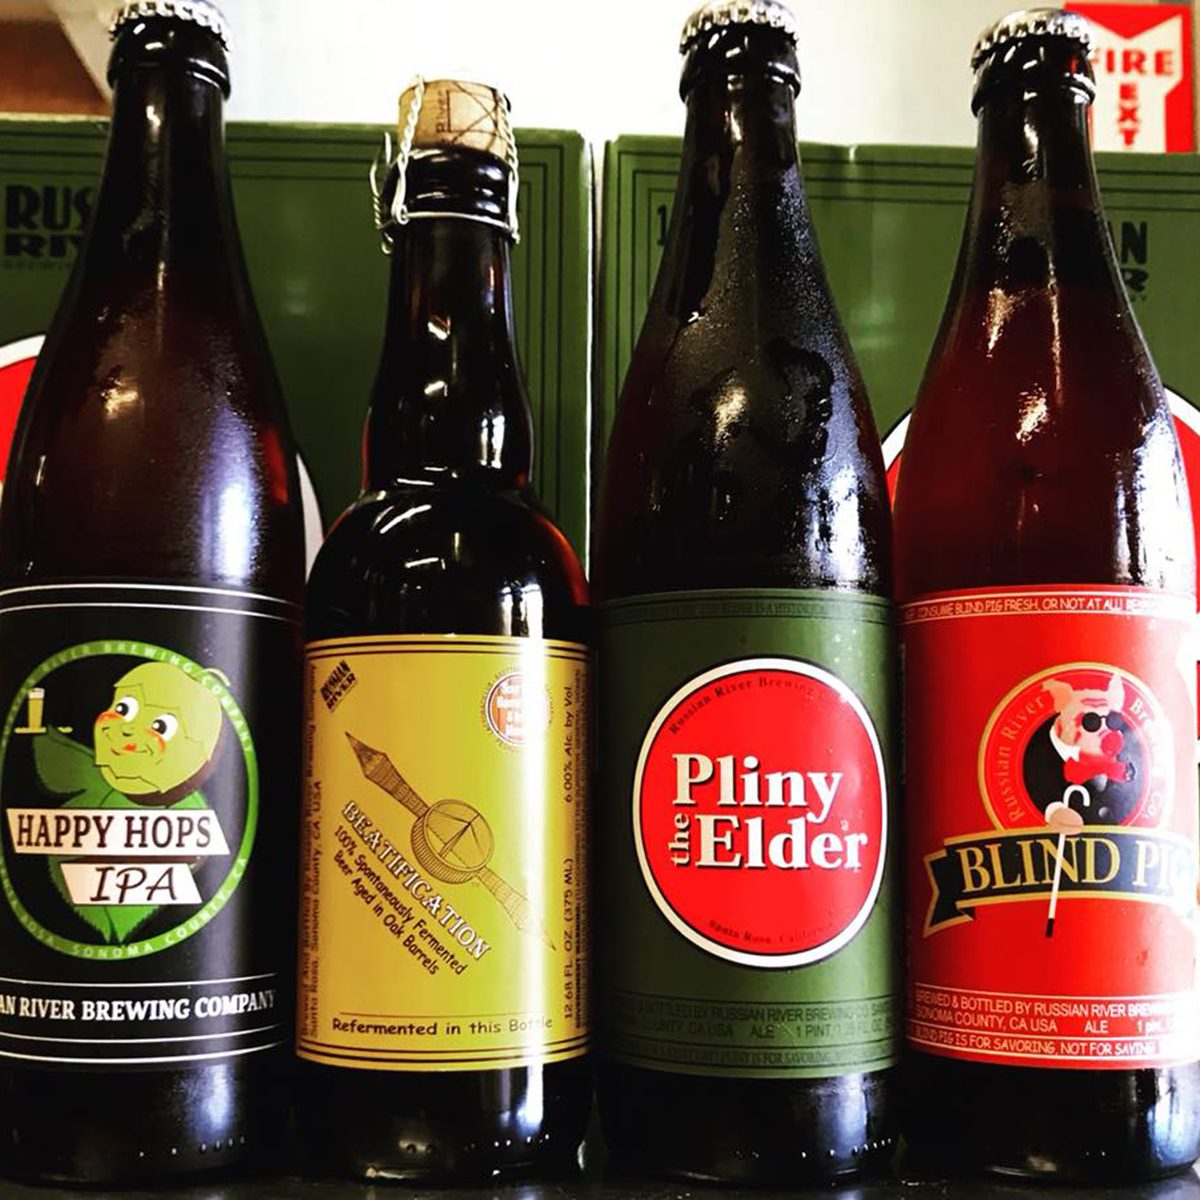 Russian River Brewing Company IPAs